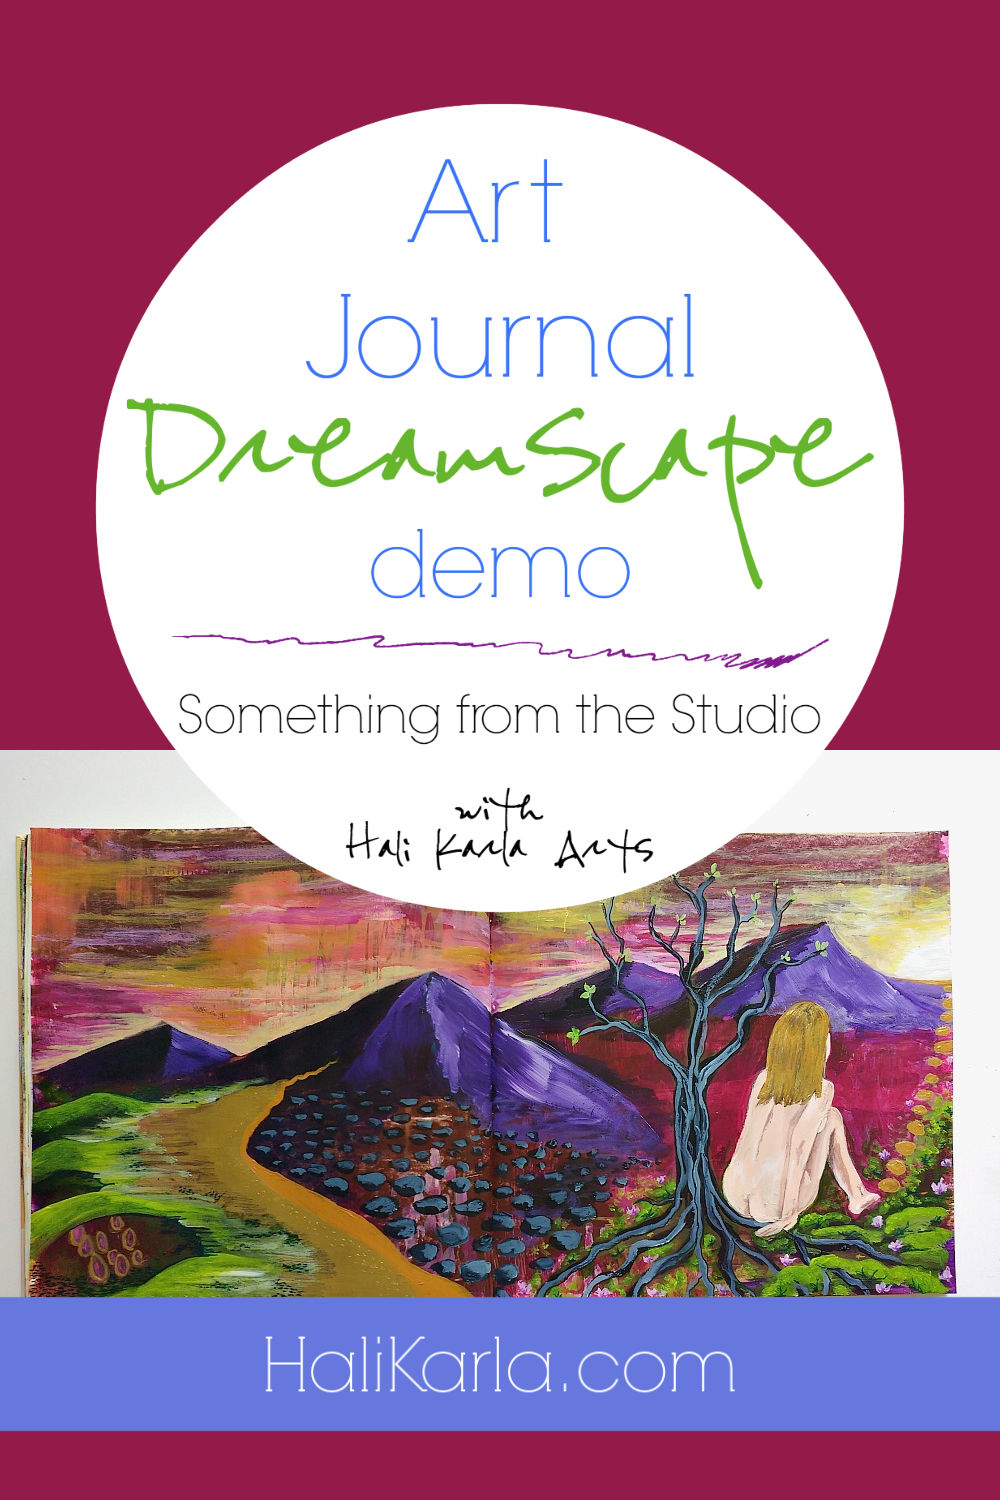 A mixed-media altered book art journal demo video. A dreamscape spread from start to finish with creative process musings. Dreamscapes are a playful, intuitive approach that takes you somewhere unplanned and usually a bit mysterious or magical.